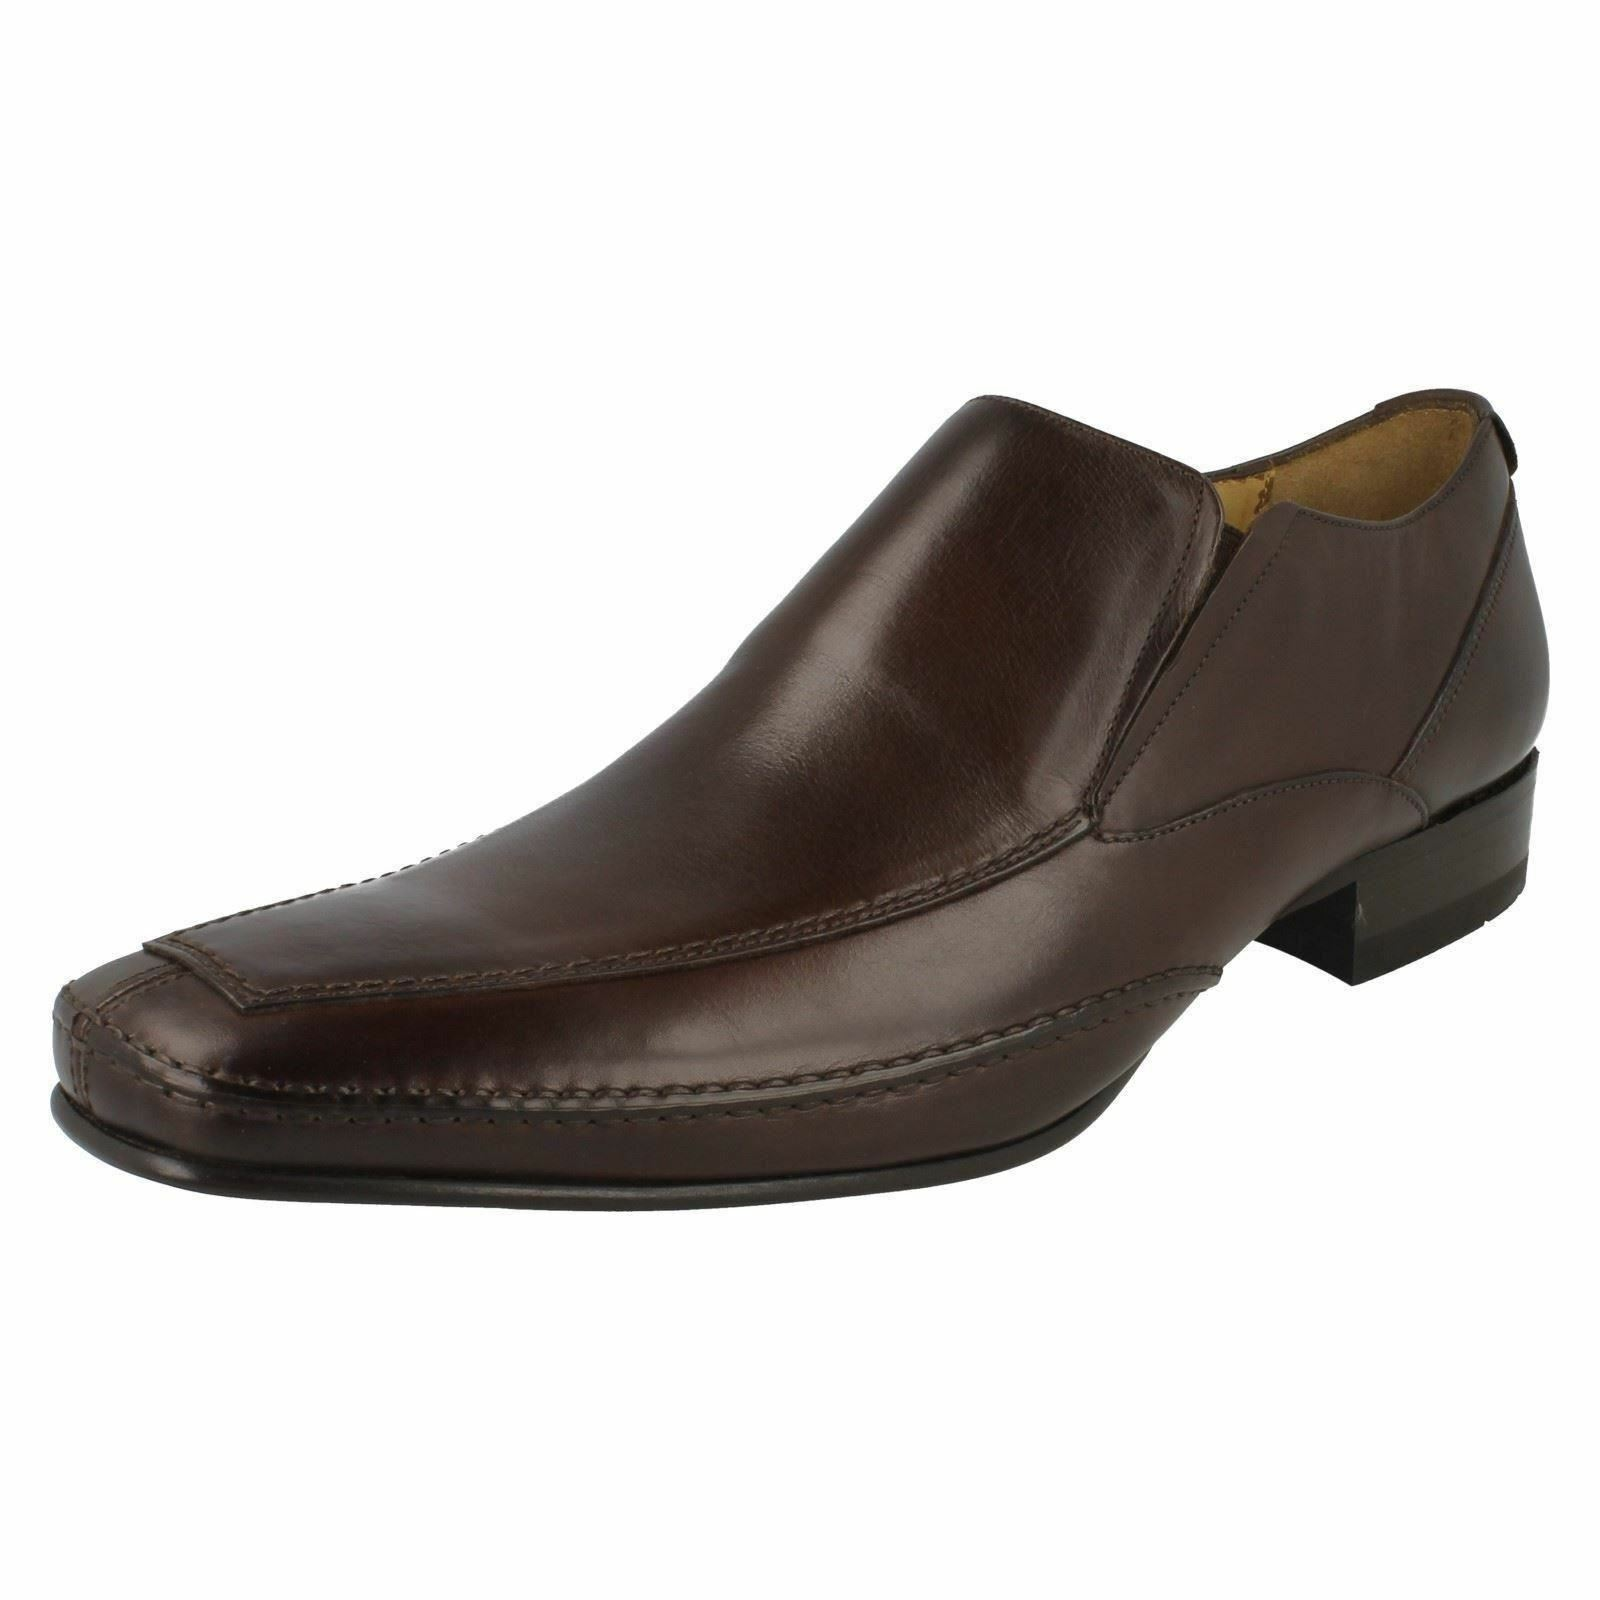 Mens Matthews dark brown leather slip on on on shoe by Loake  .00 d4c648